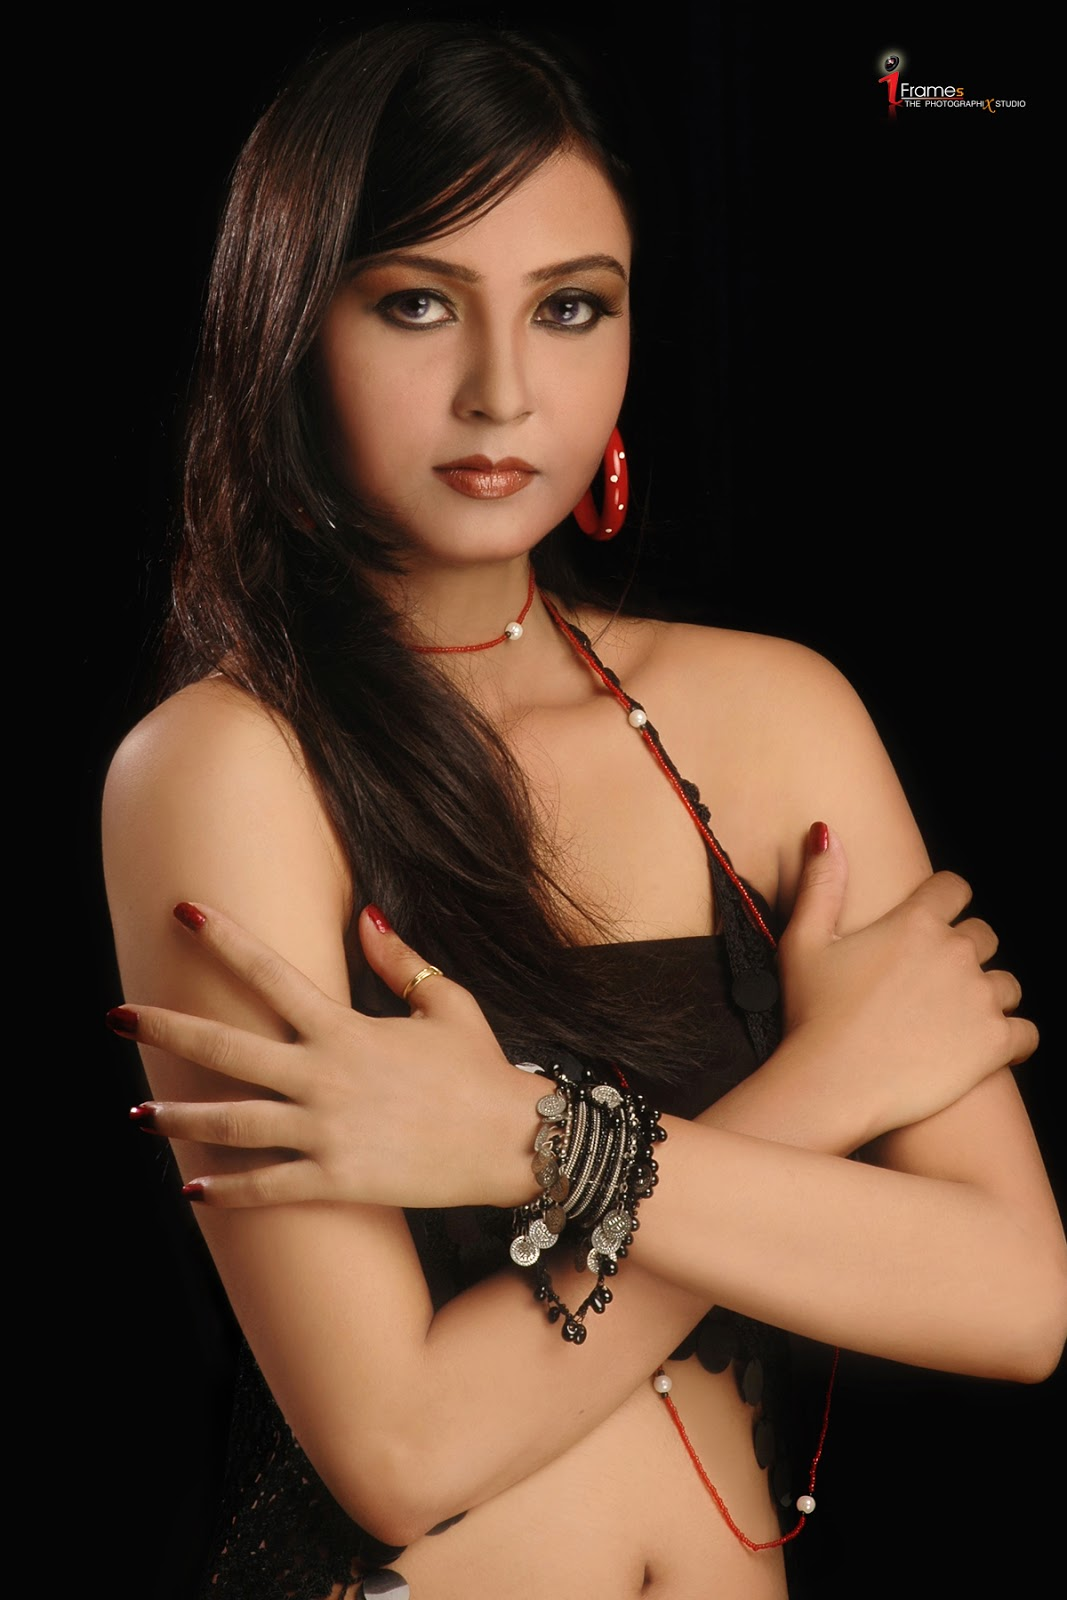 Bhojpuri Actress Mohini Ghosh wikipedia, Biography, Age, Mohini Ghosh Age, boyfriend, filmography, movie name list wiki, upcoming film, latest release film, photo, news, hot image